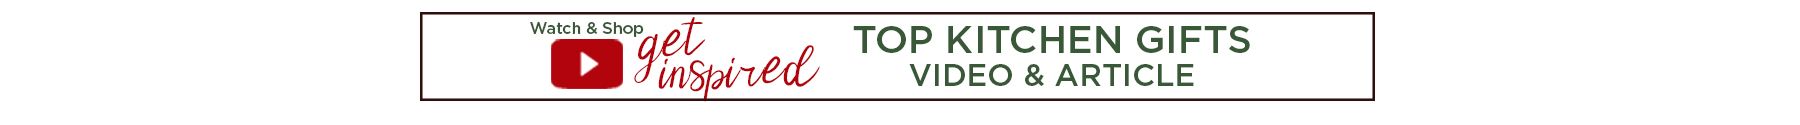 Get Inspired, Watch and read article: Top Kitchen Gift Ideas 2020